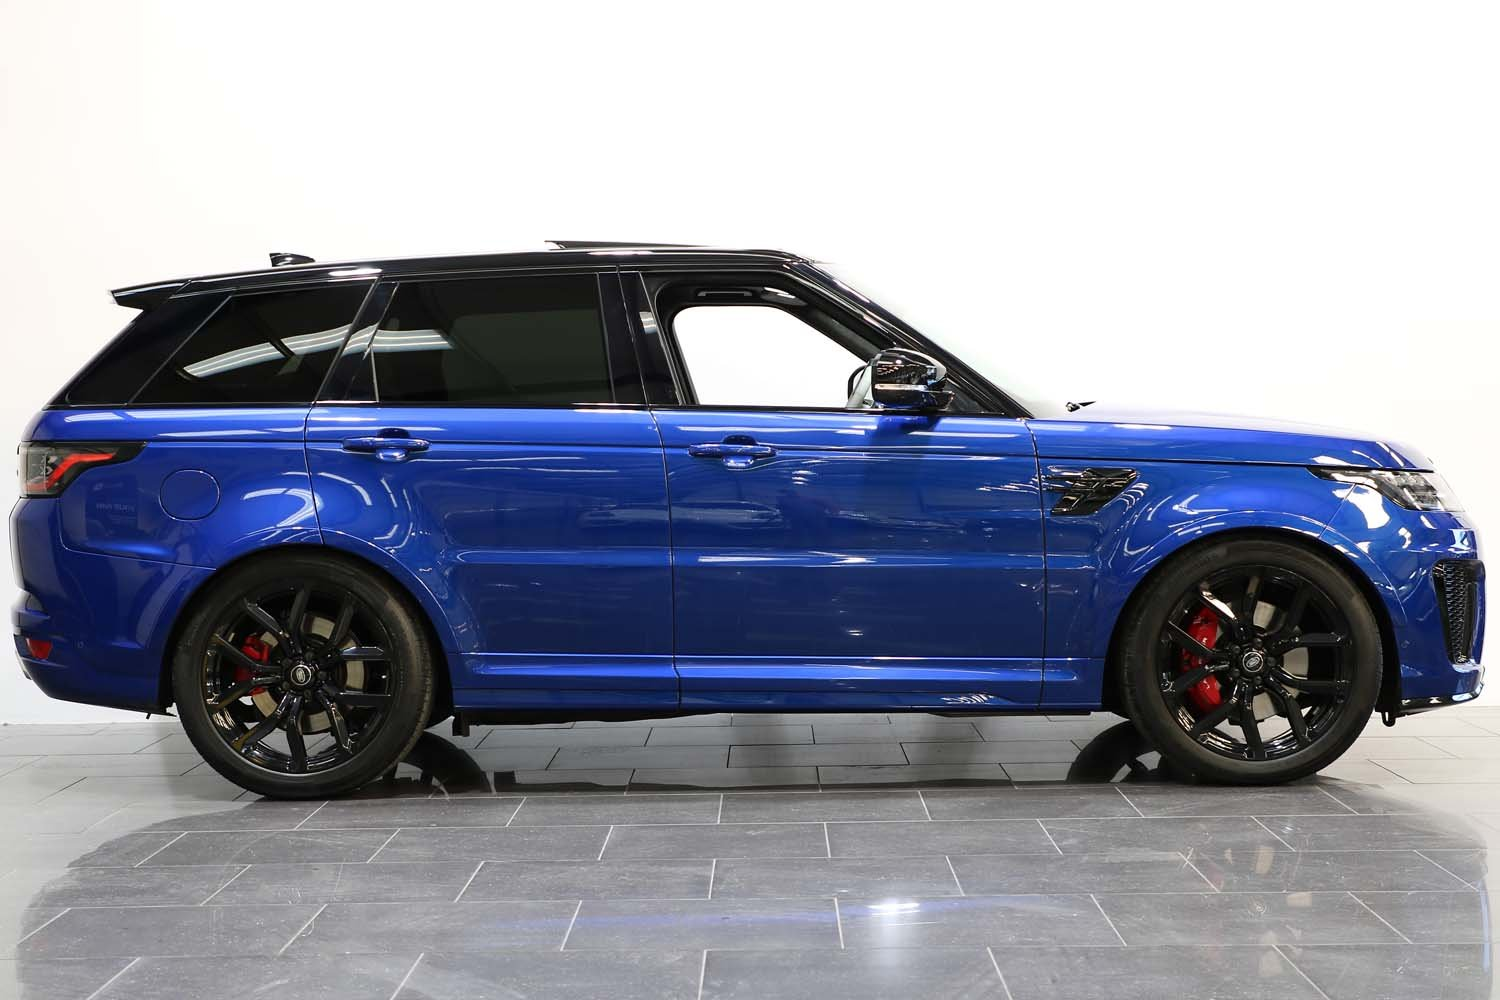 2018 18 RANGE ROVER 5.0 V8 SUPERCHARGED SVR AUTO For Sale (picture 3 of 6)